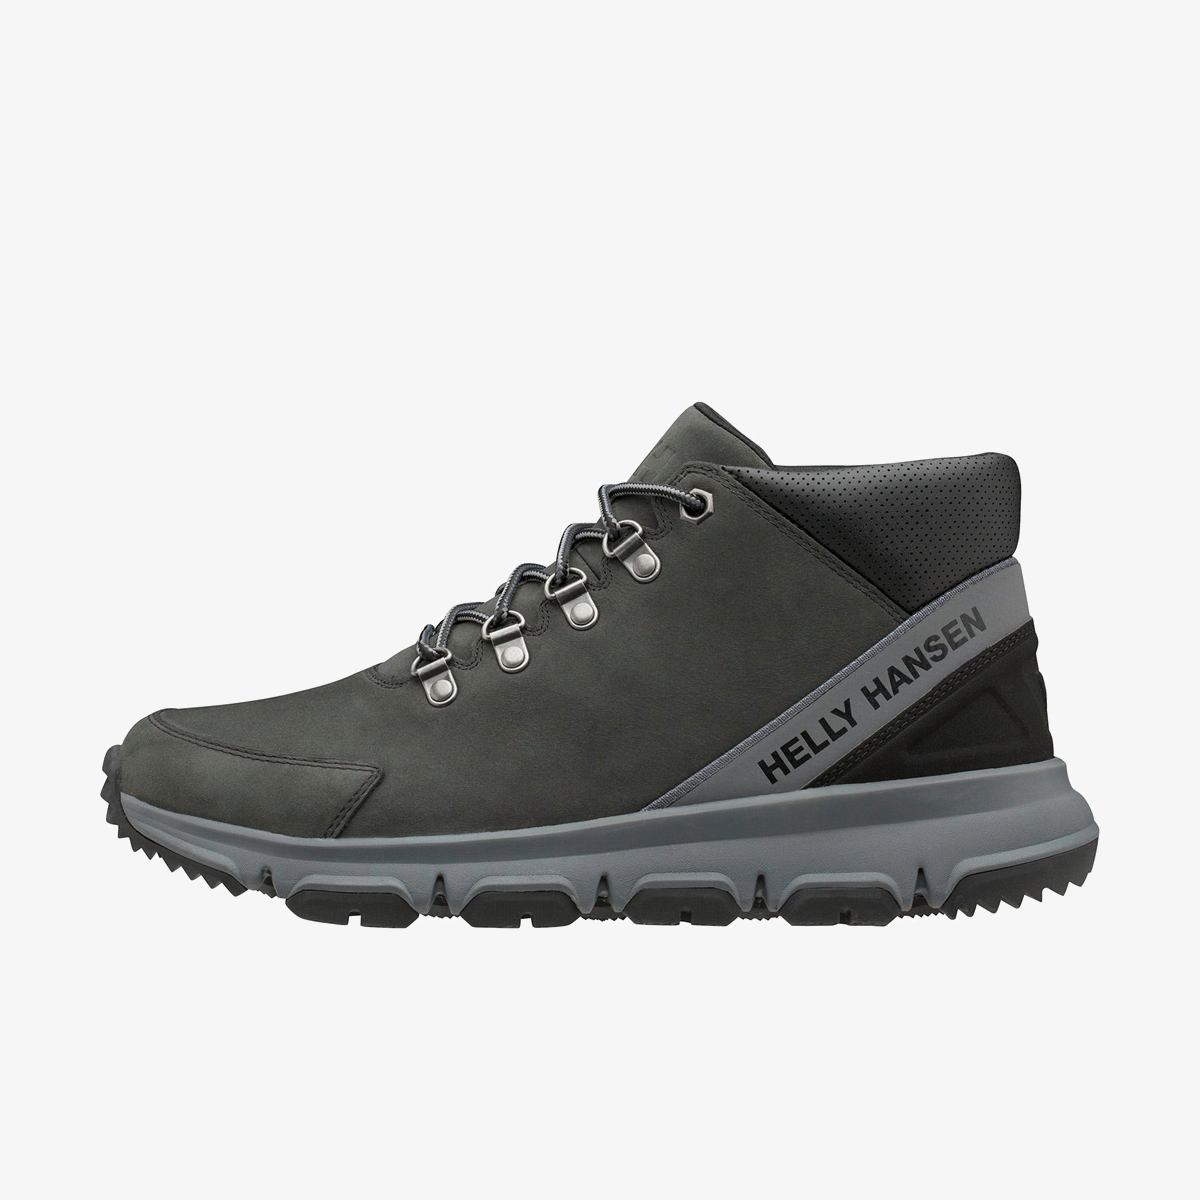 Ботинки Helly Hansen FENDVARD BOOT